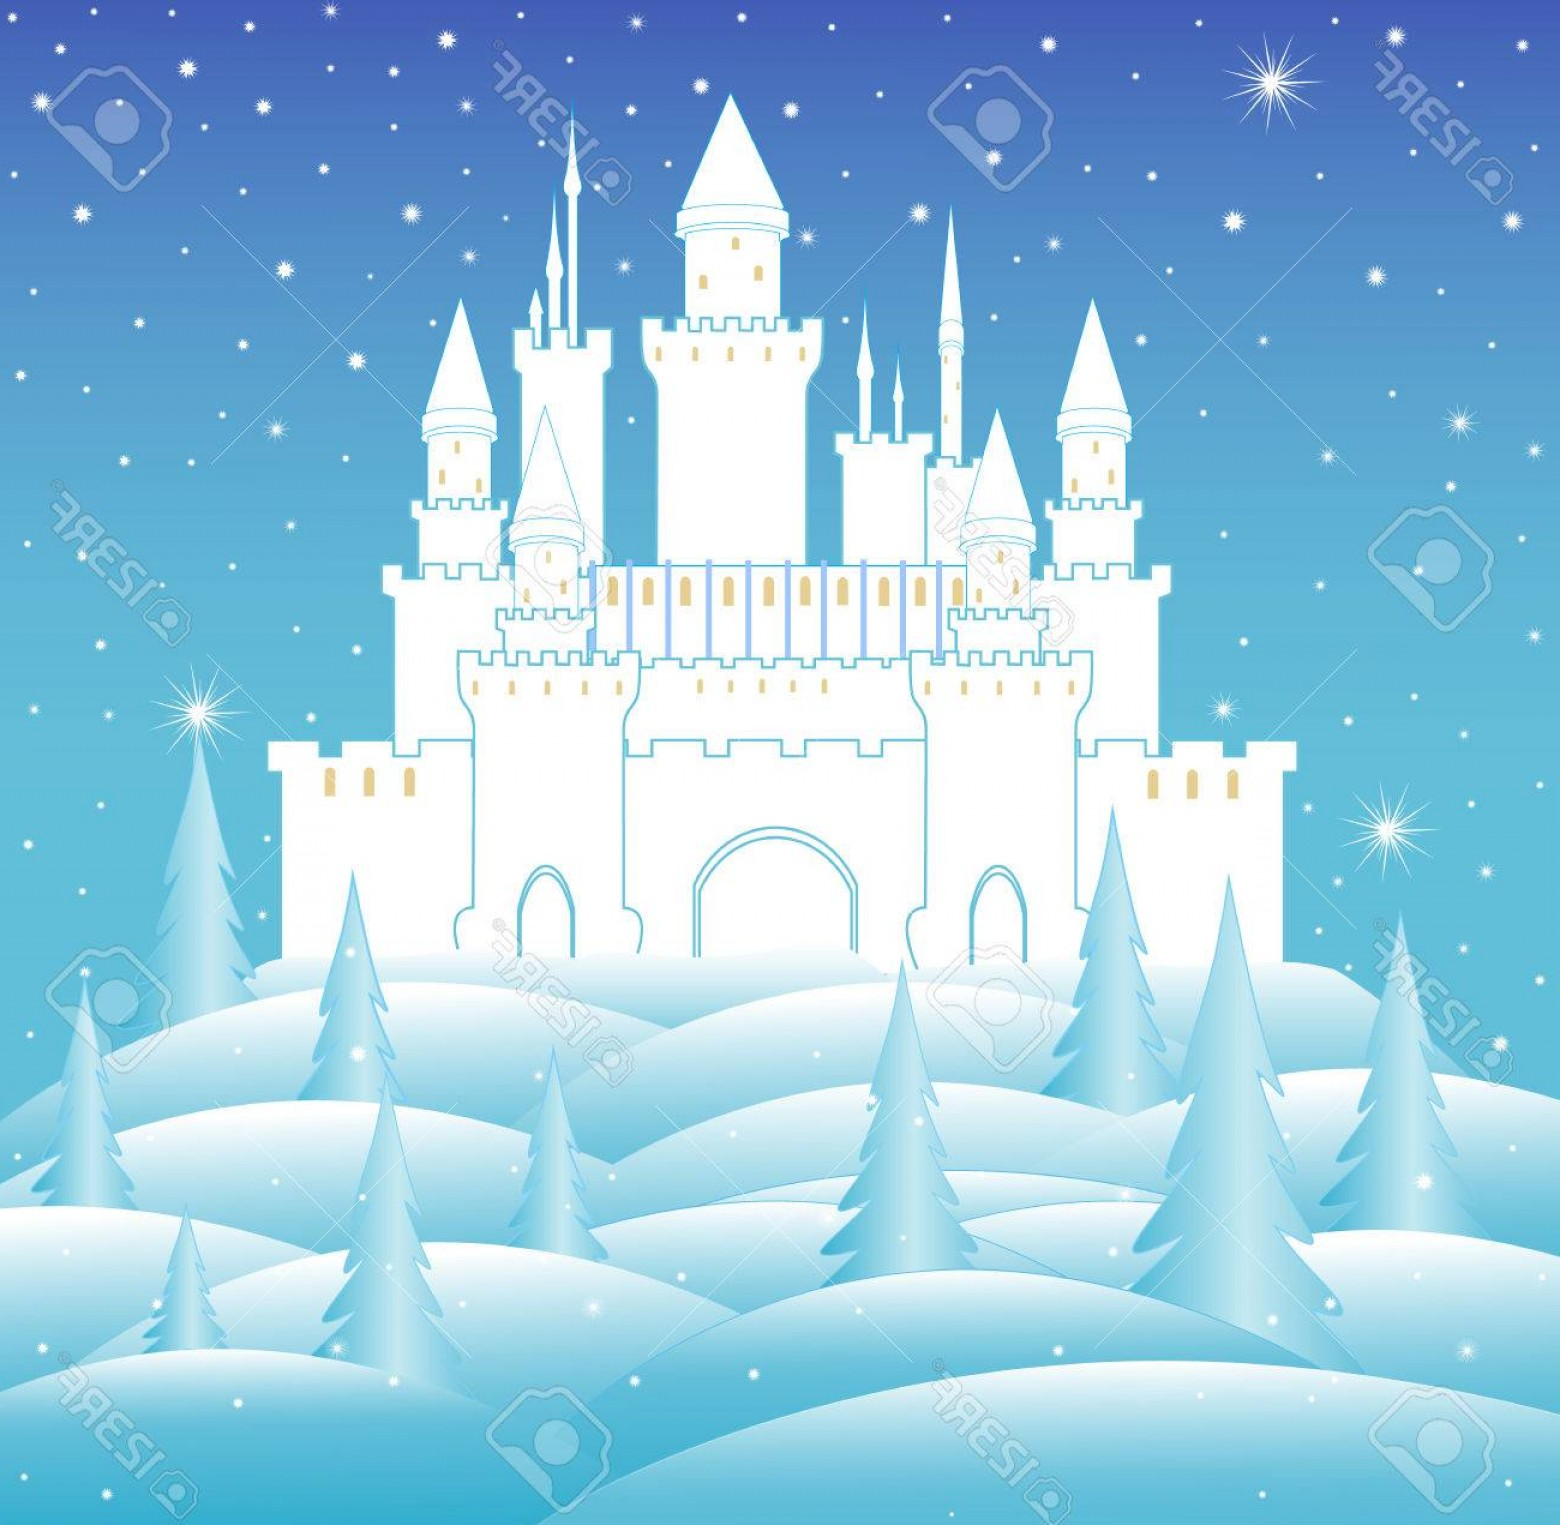 Frozen Castle Vector.